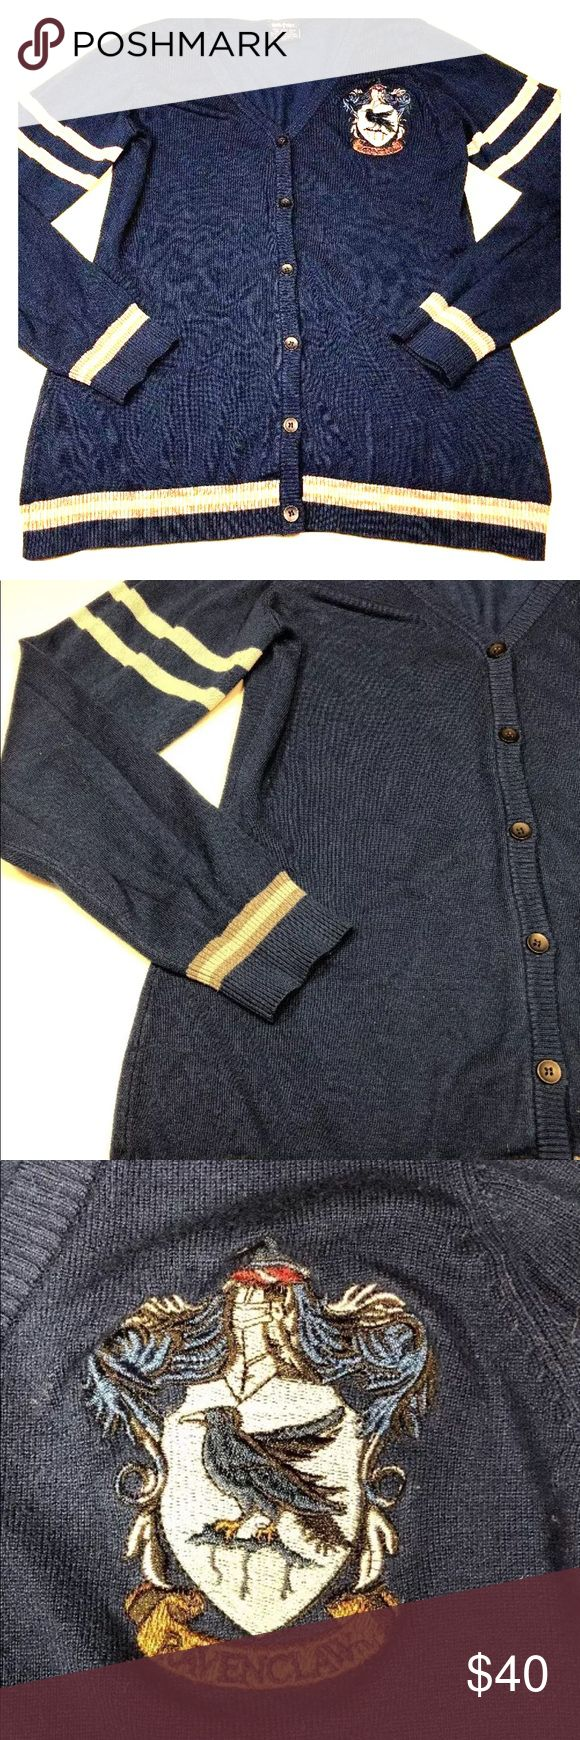 HARRY POTTER Ravenclaw Cardigan Sweater Blue XL 16 Good pre-owned condition. No obvious flaws---may be some slight pilling. Lighting in photos doesn't portray true colors--- sweater is a rich navy blue, and the bands are grey.   Womens Size XL (16). See photos for measurements. Harry Potter Sweaters Cardigans